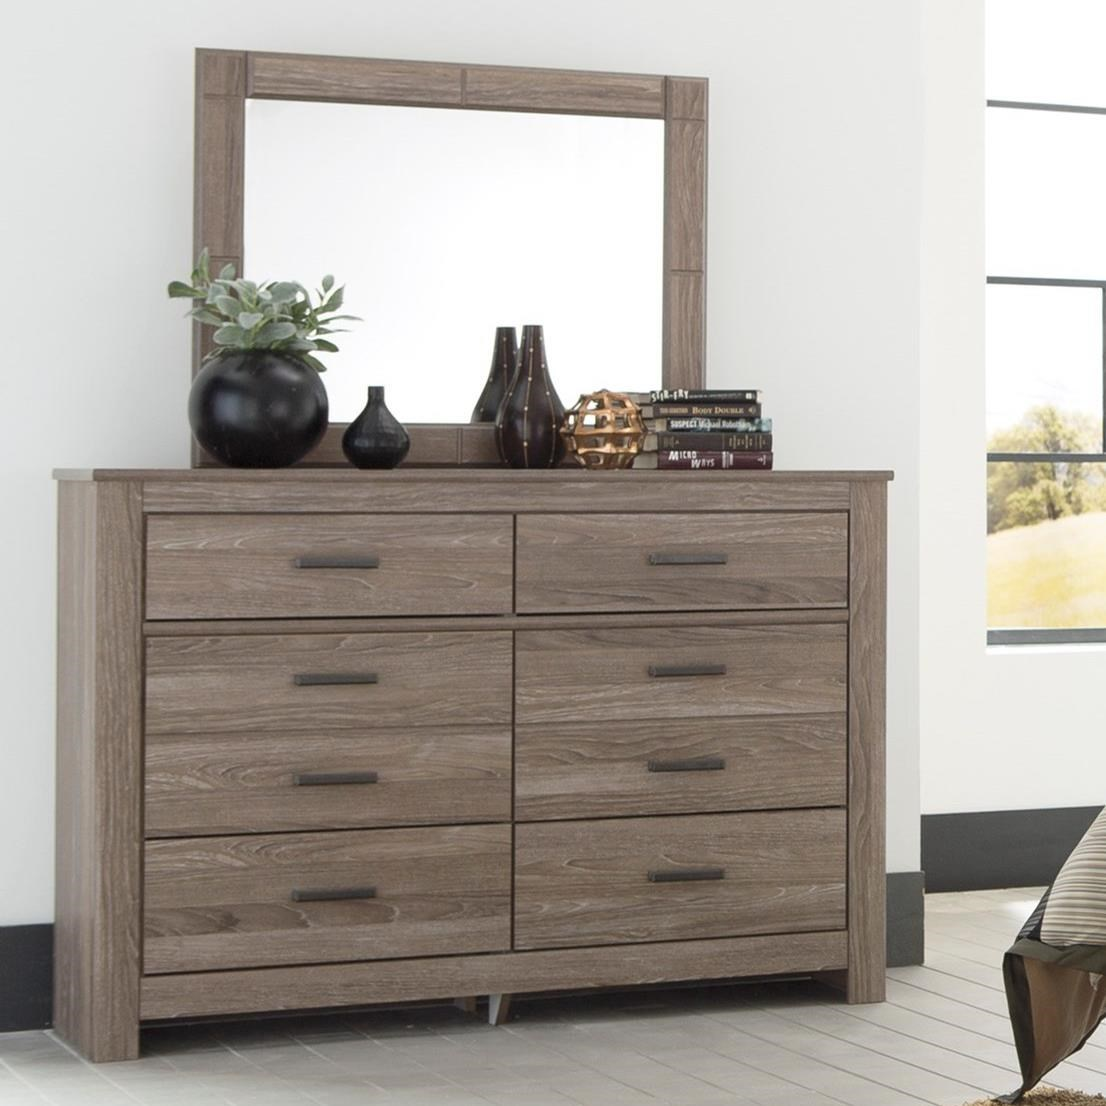 Signature Design By Ashley Waldrew 6 Drawer Dresser Bedroom Mirror In Gray Finish Olinde 39 S